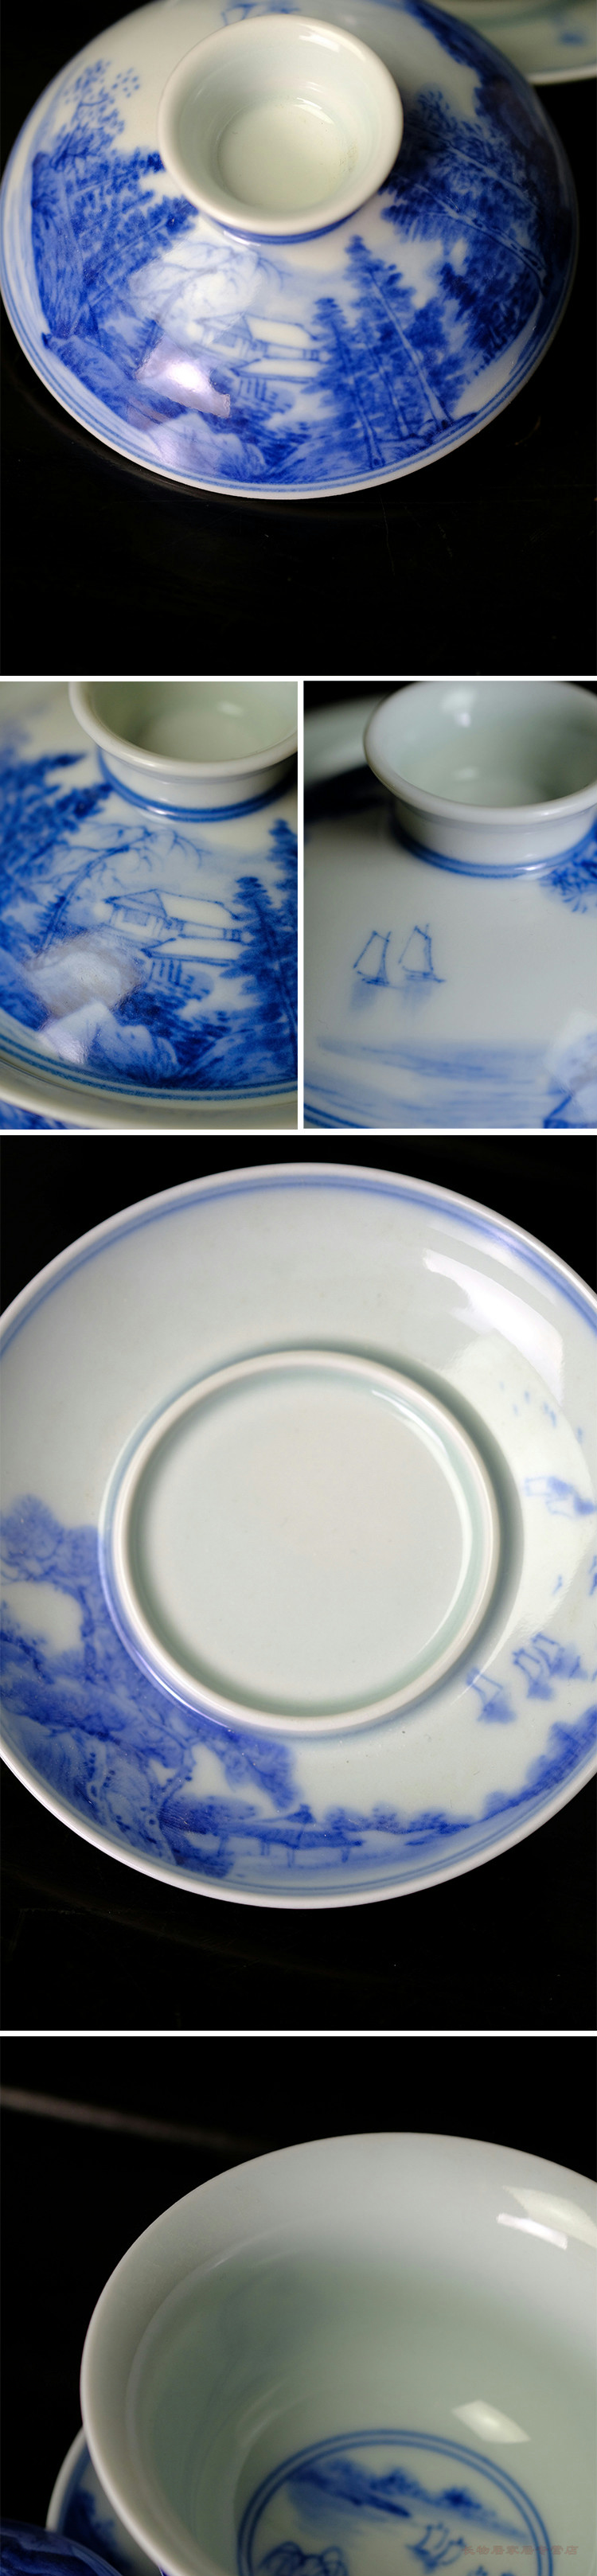 Long up offered home - cooked wen - bo xiong the teacher hand - made maintain in jingdezhen blue and white chunjiang white water rafting zealand-based scenic tureen tea set